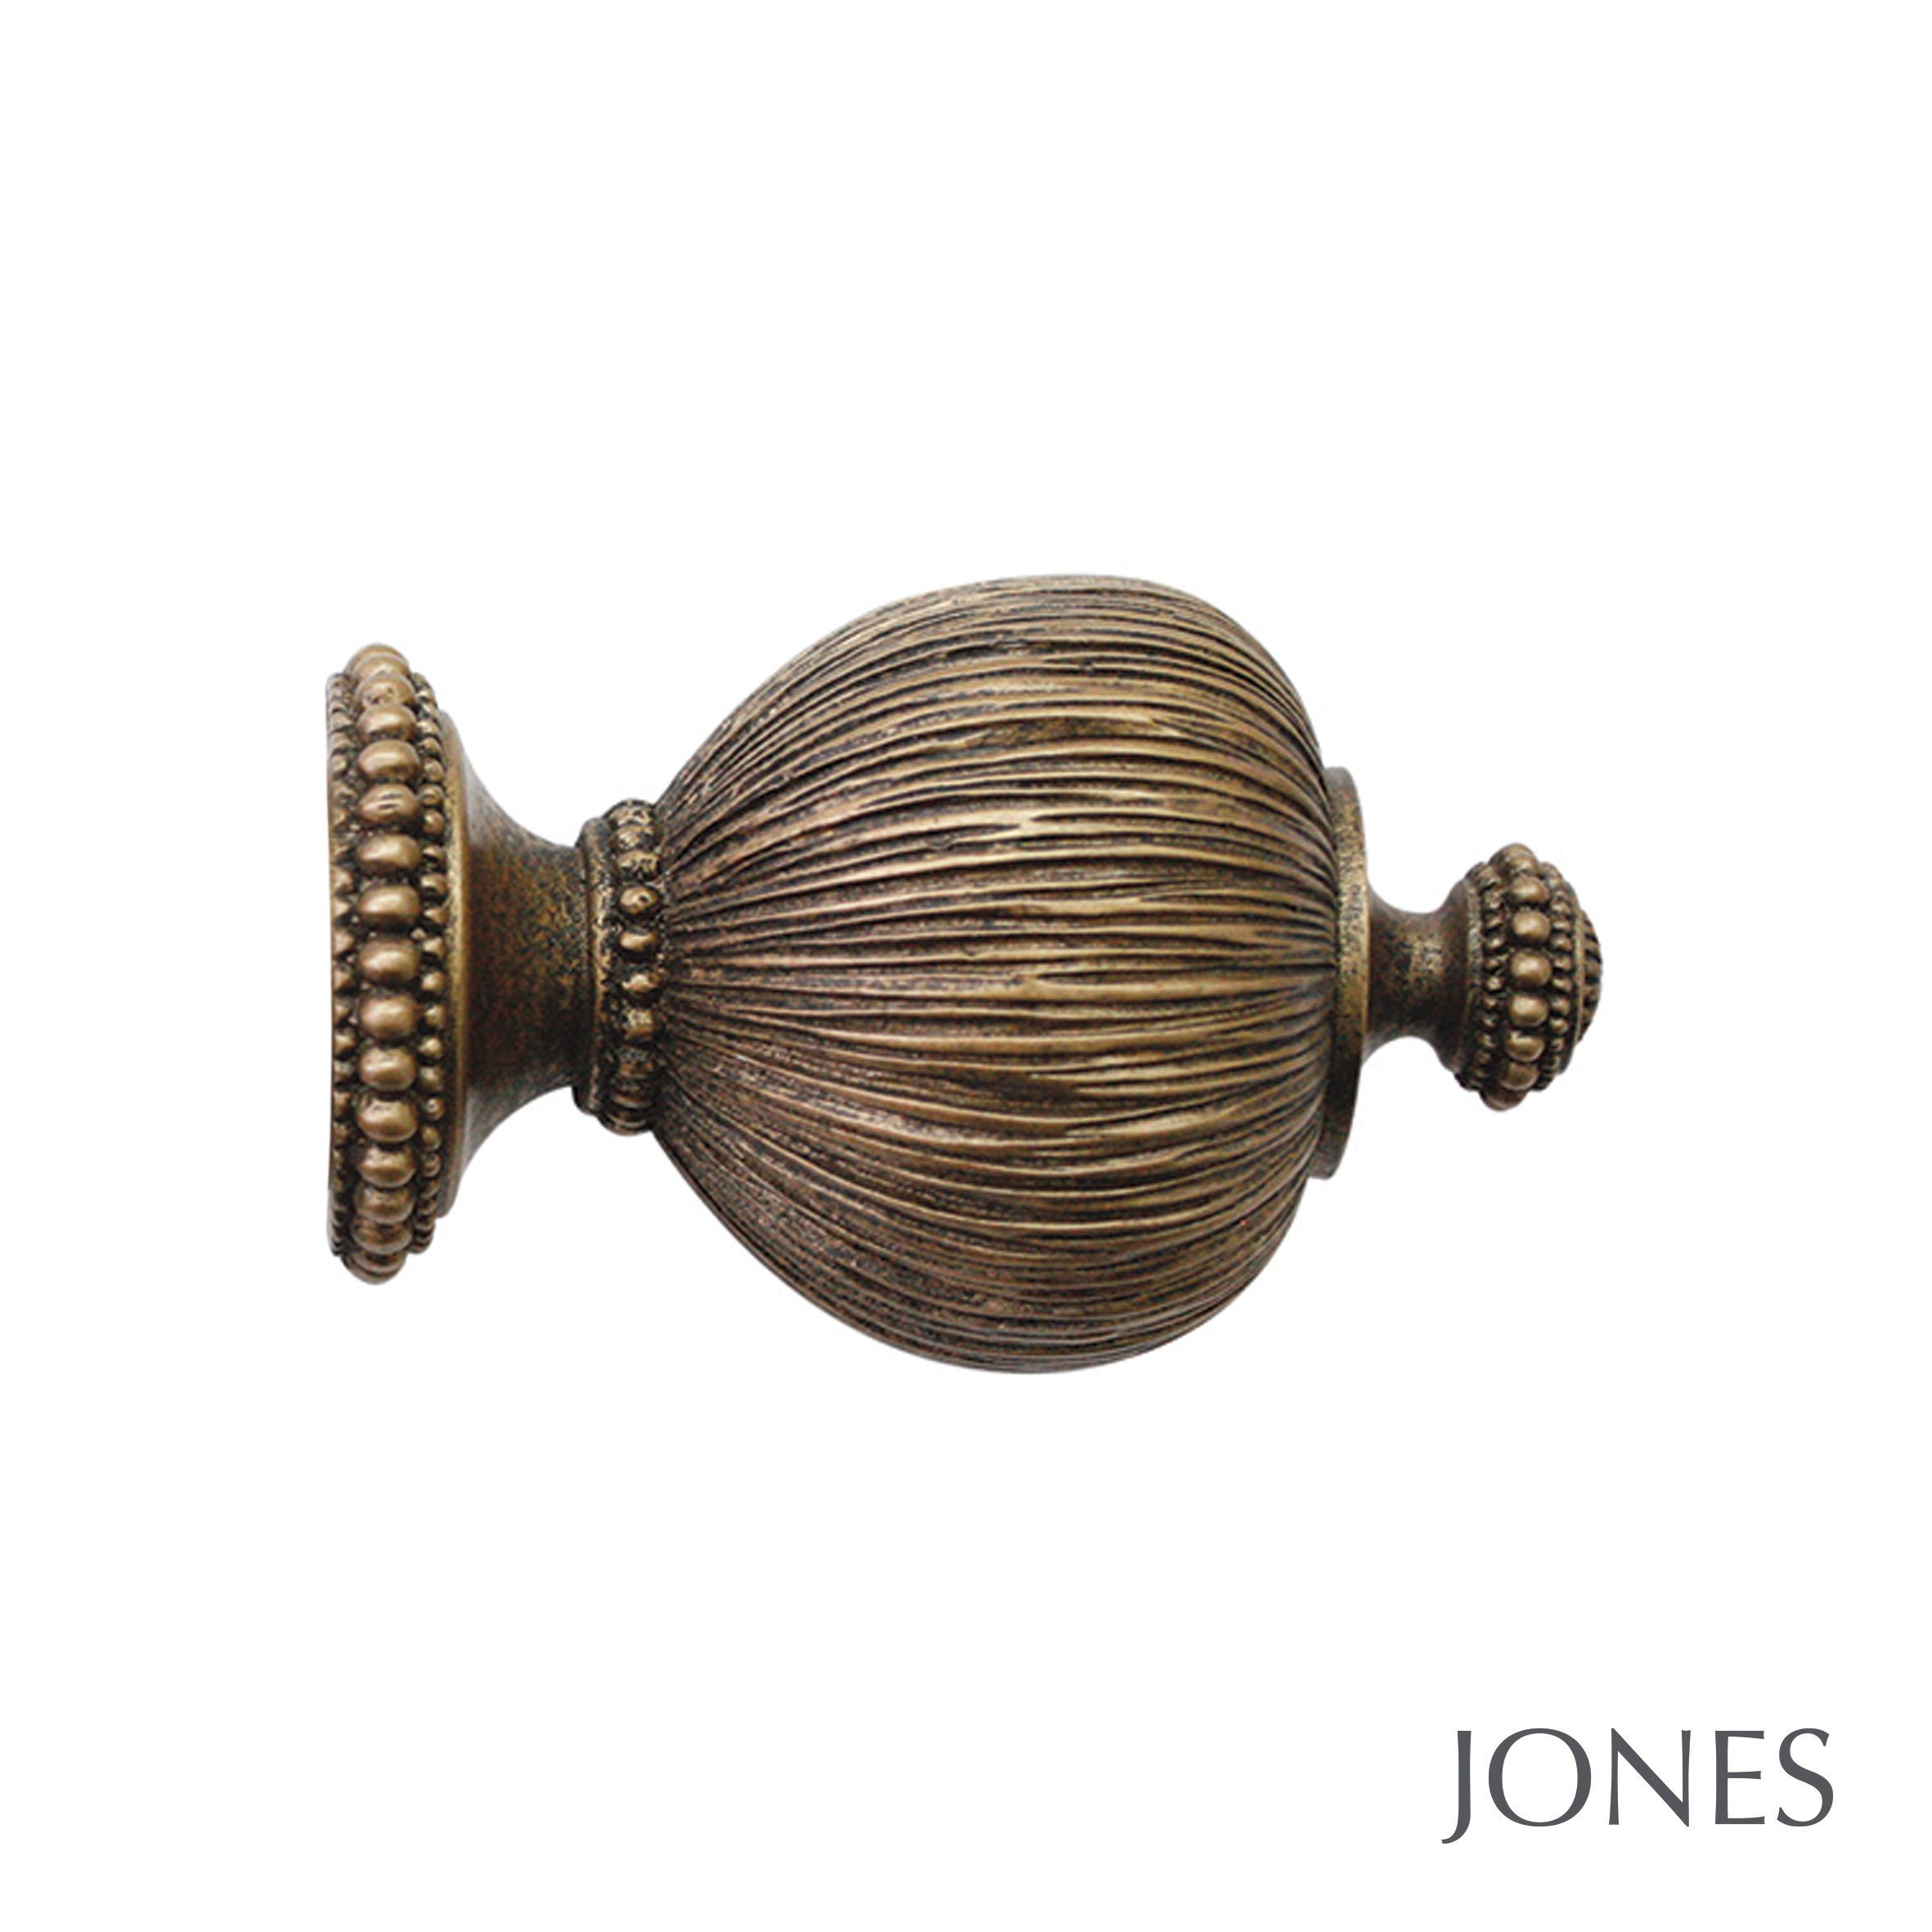 50mm Jones Florentine Pleated Finial antique gold